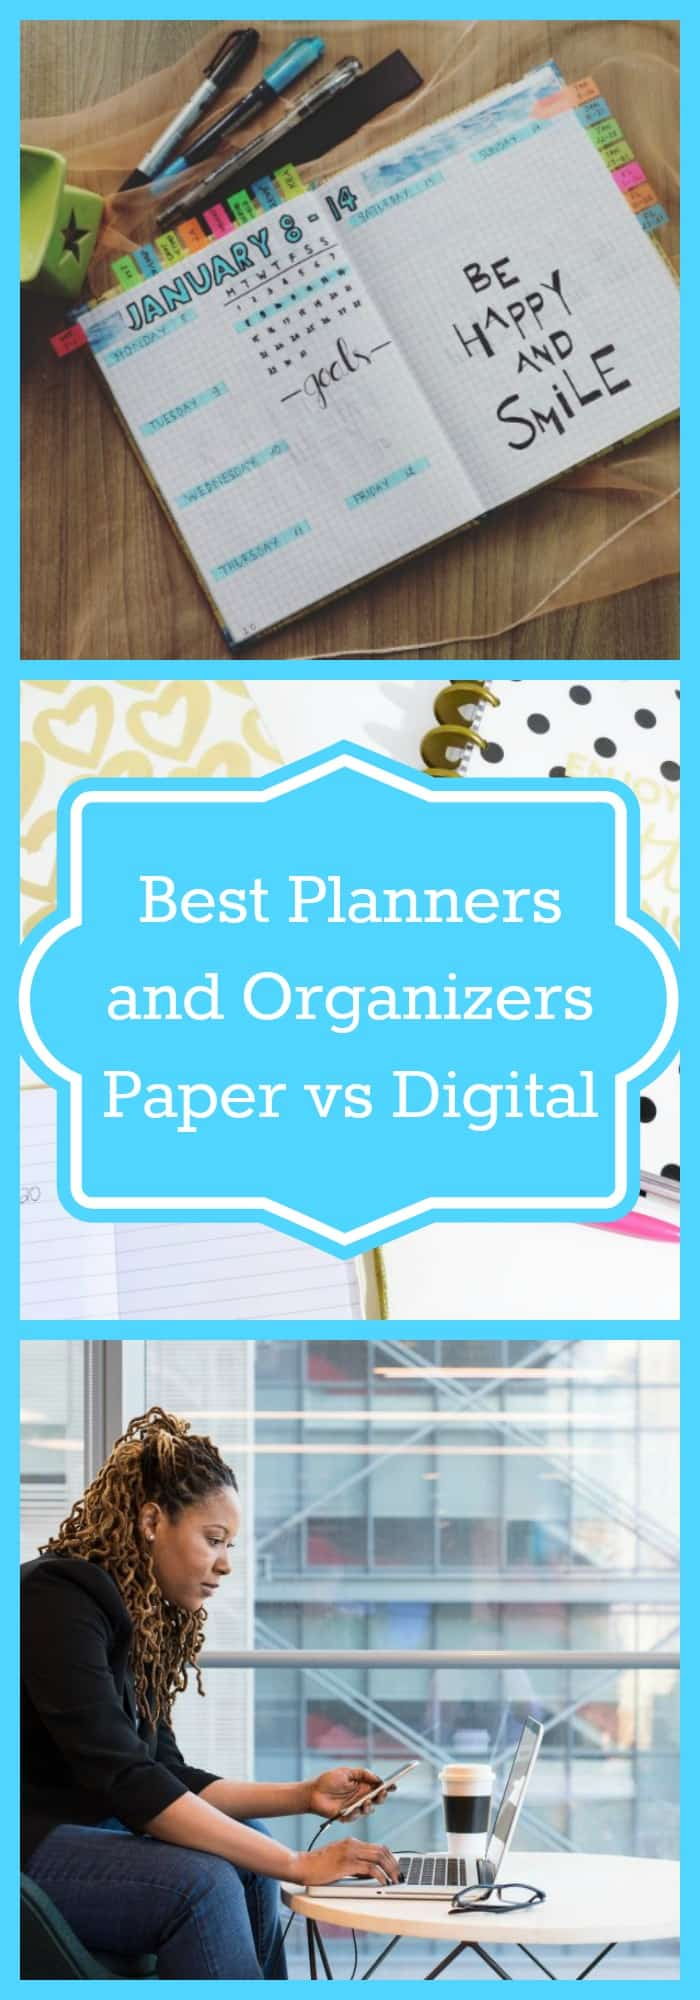 Best Planners and Organizers--Paper vs Digital